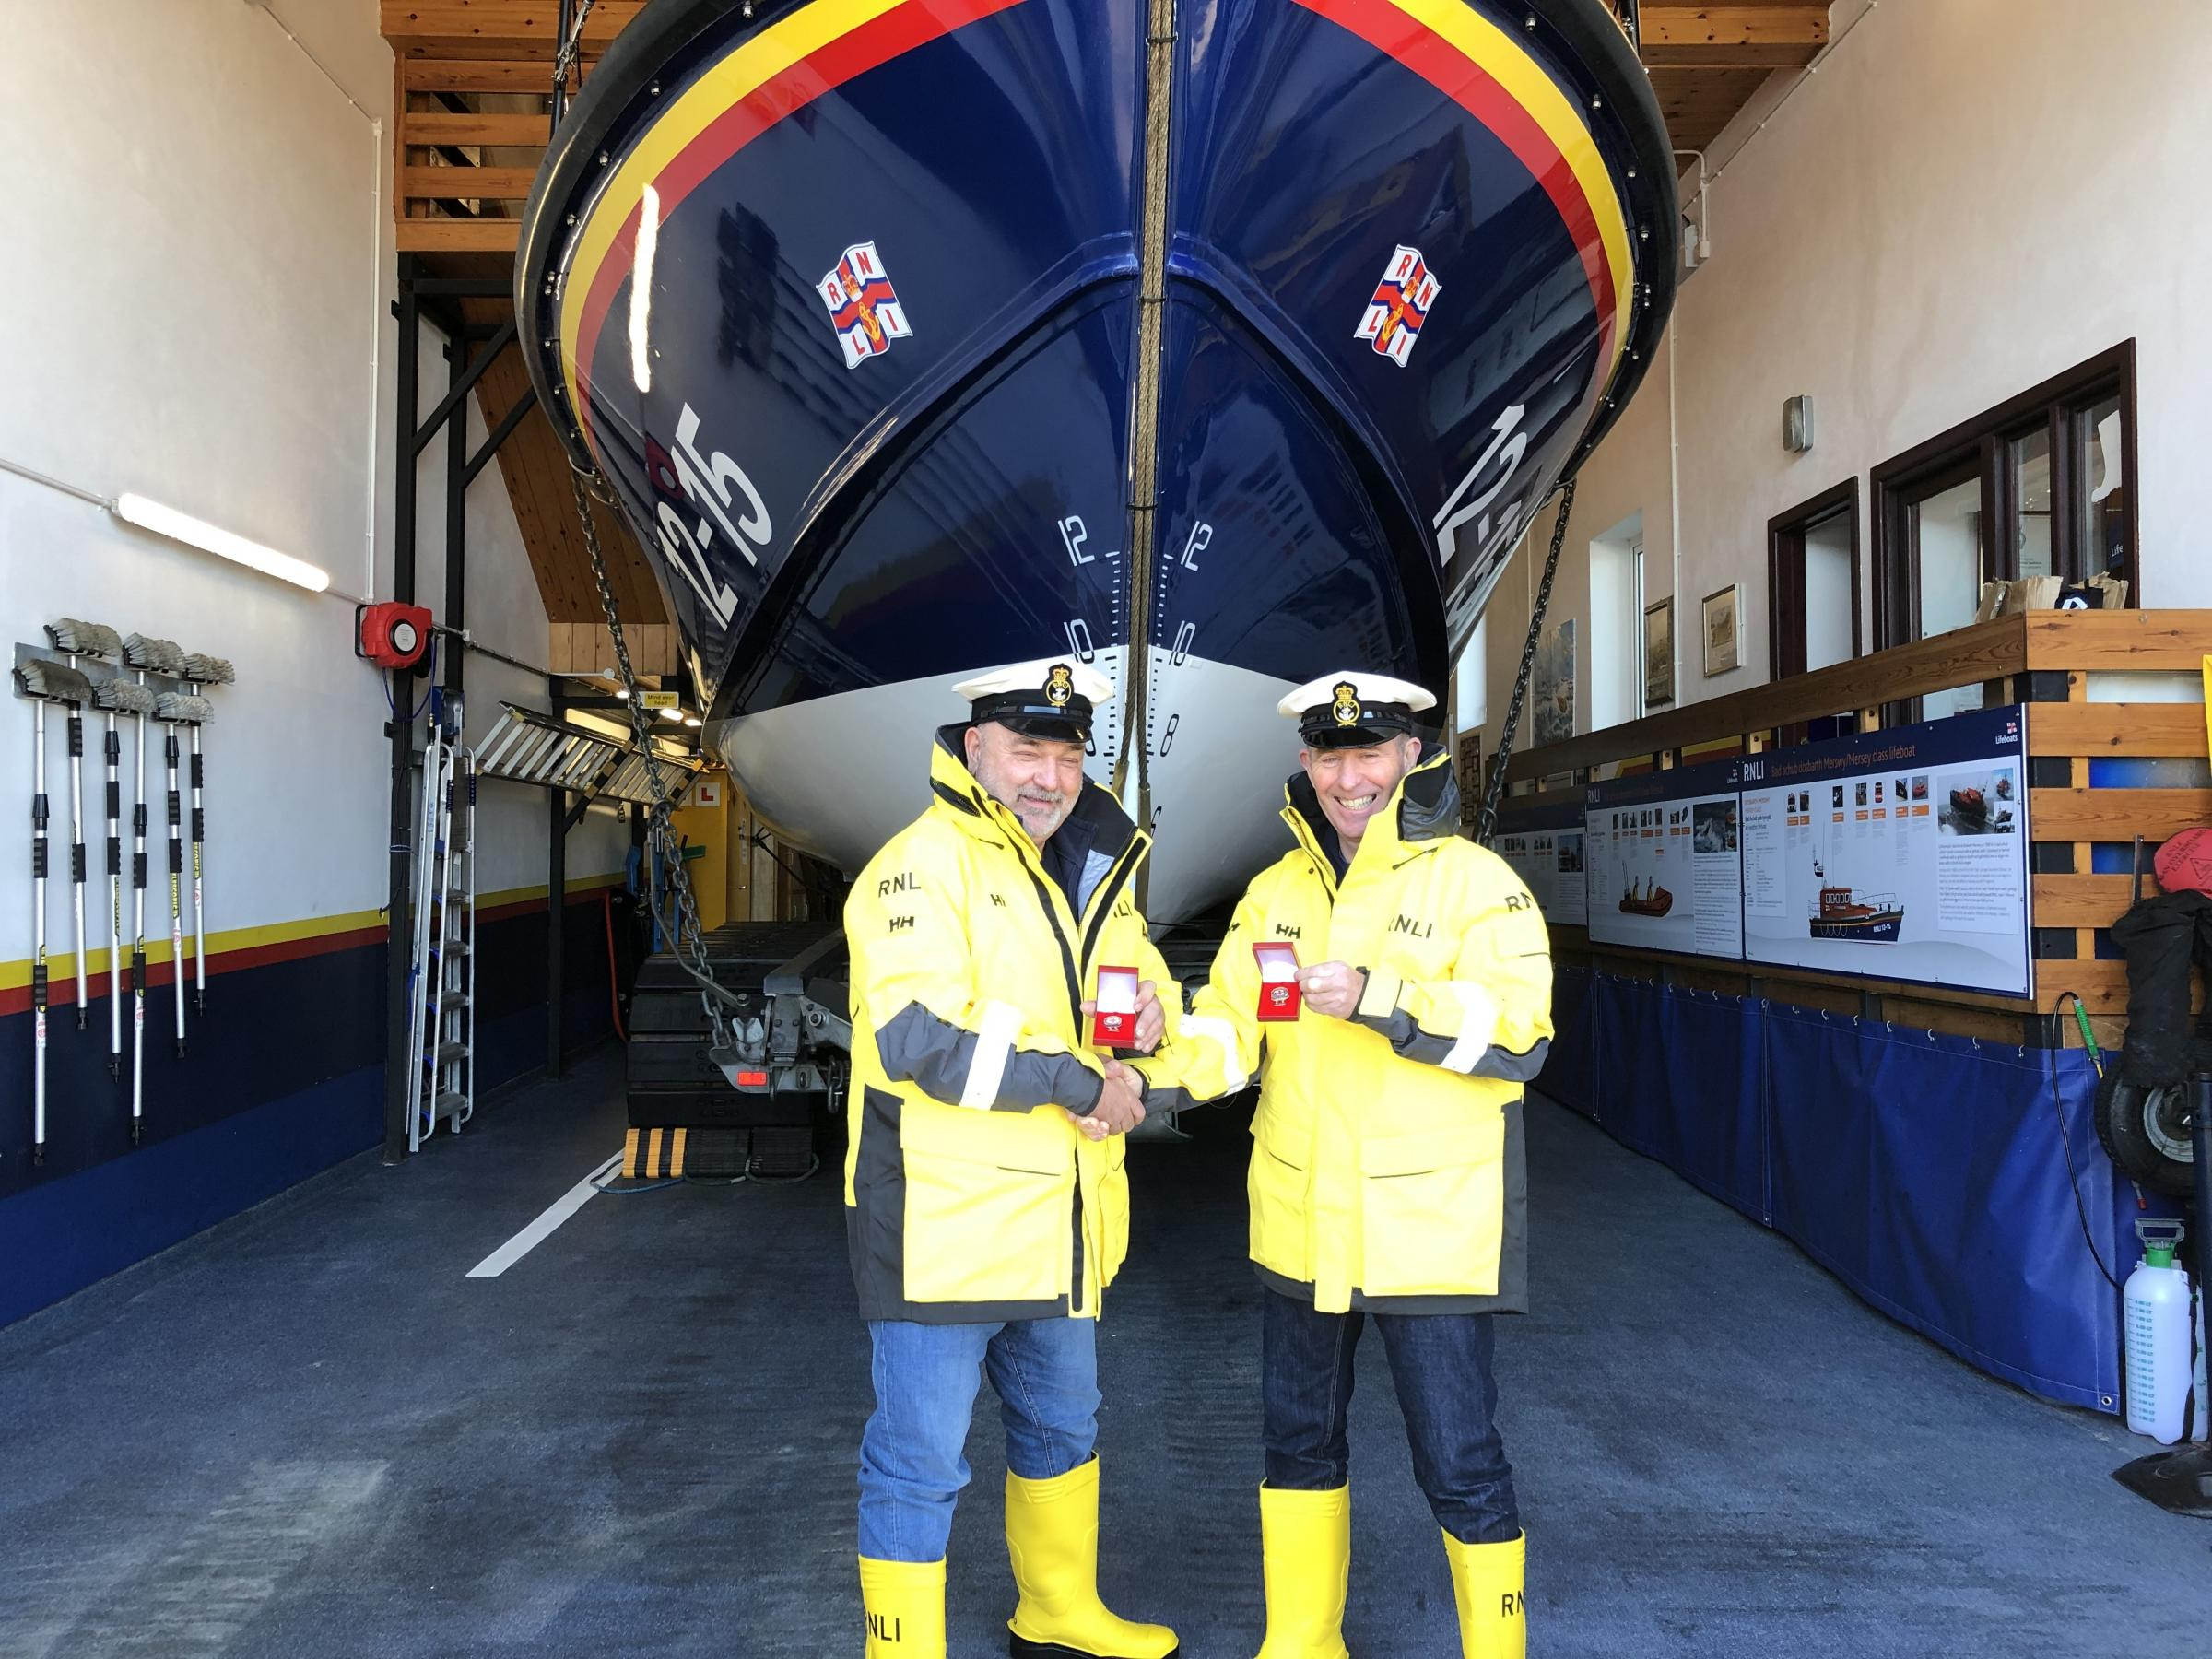 New Quay RNLI coxswain Daniel Potter (left) and second coxswain Steve Hartley with their awards